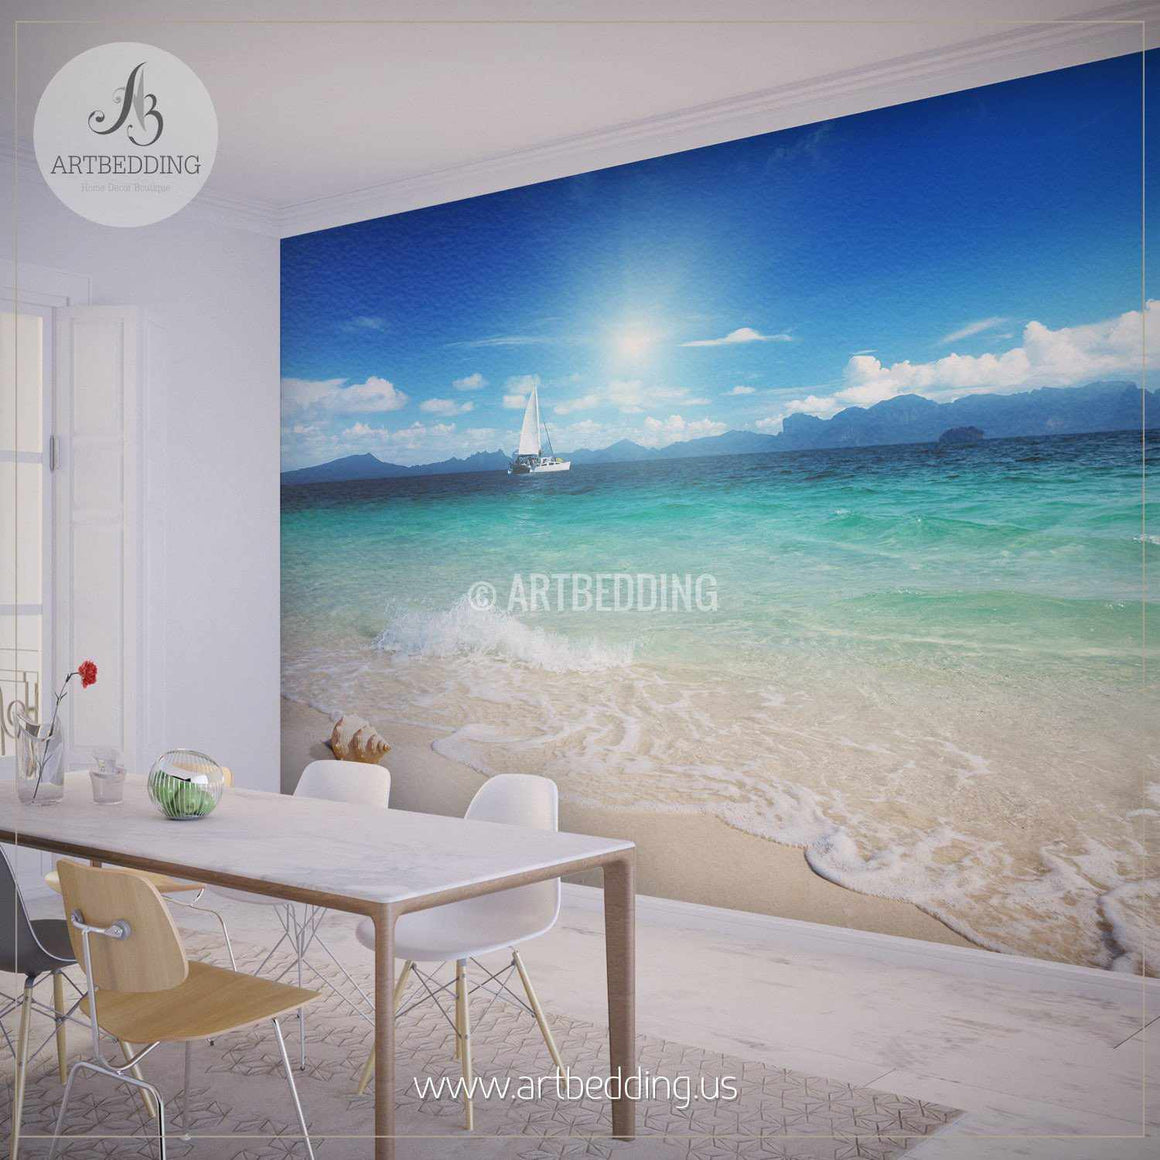 Yacht from the Shore Wall Mural, Self Adhesive Peel & Stick Photo Mural, Nature photo mural home decor wall mural